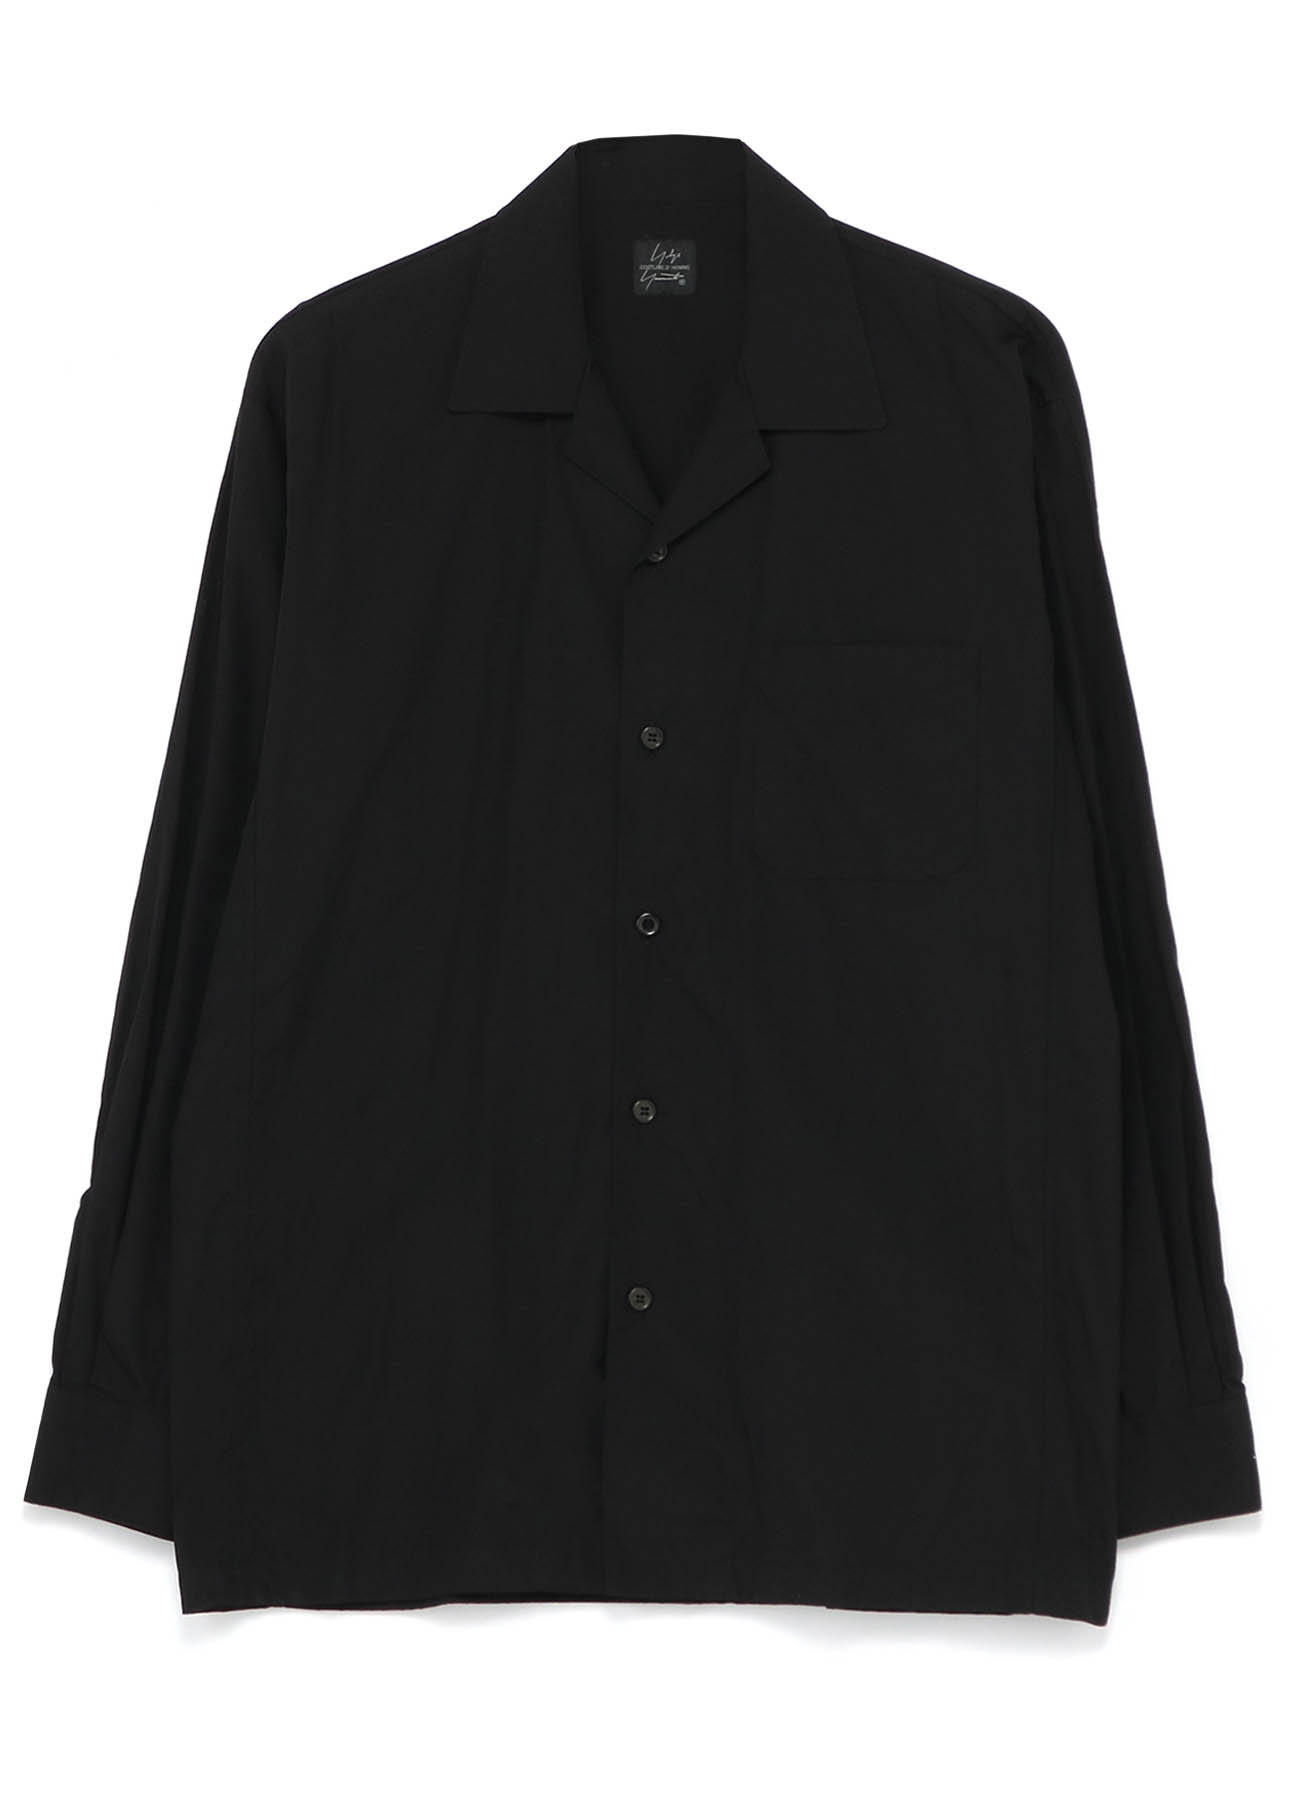 COSTUME D'HOMME 4 DIMENSION CUTTING MOTION OPEN COLLAR SHIRT